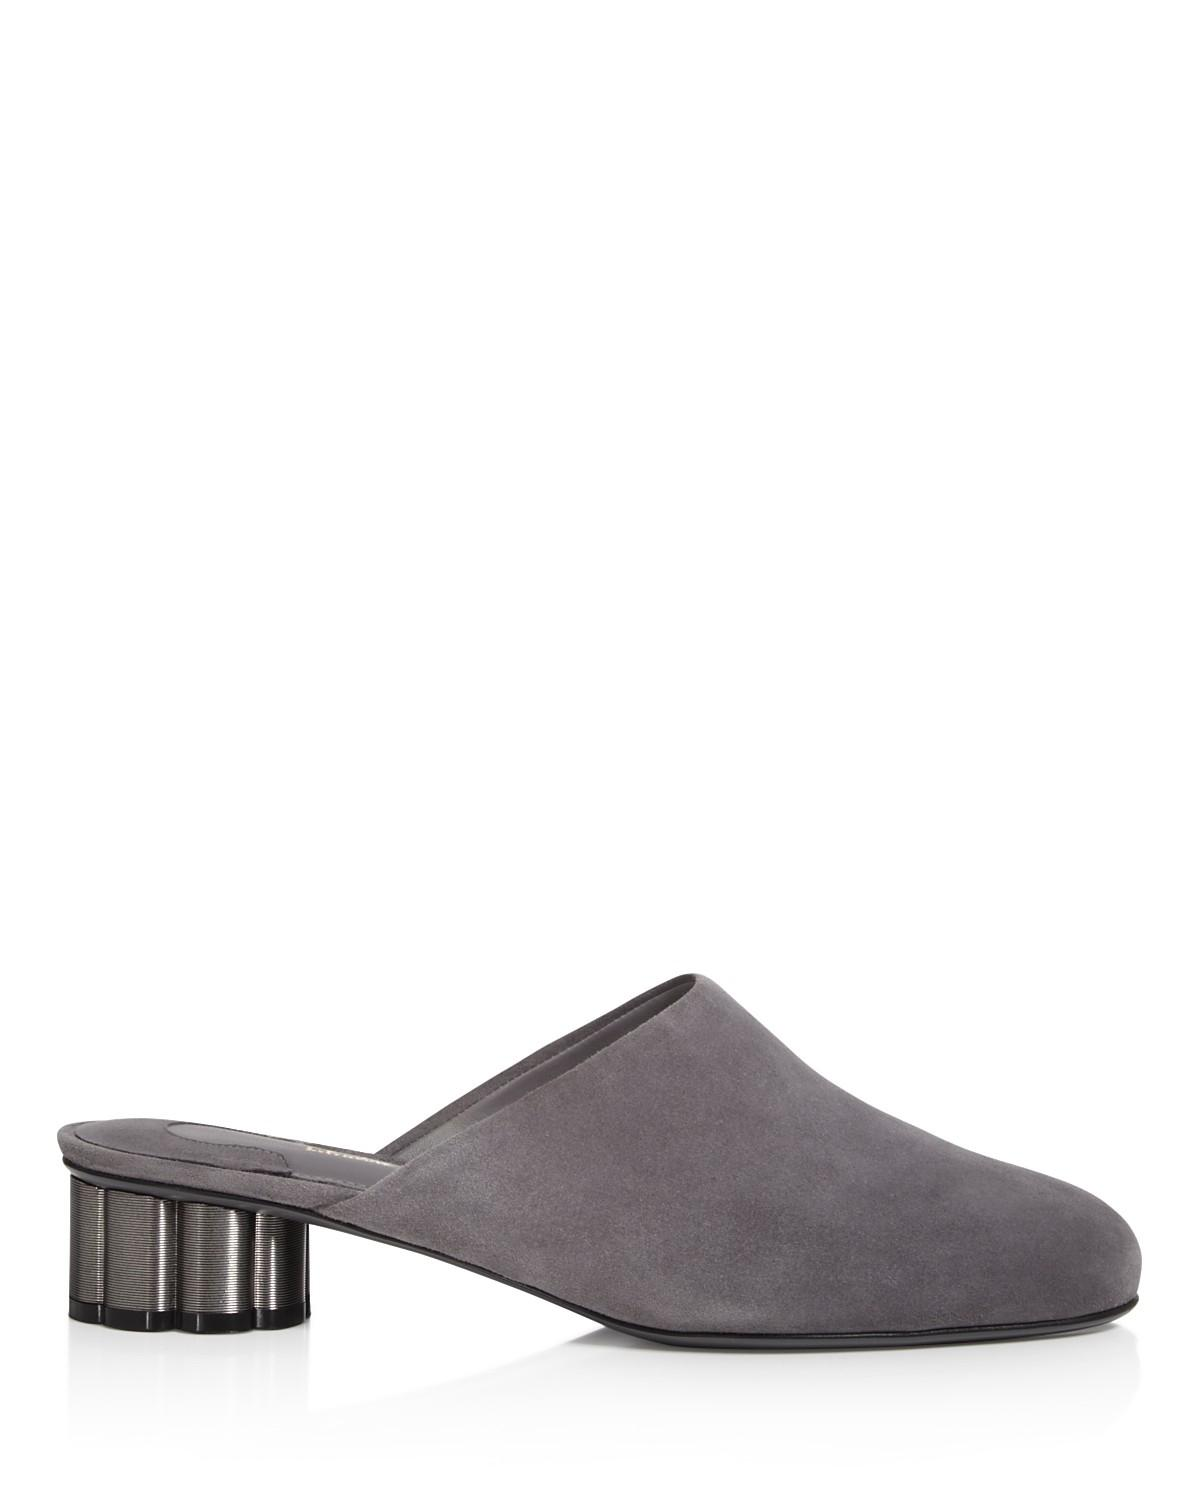 Free Shipping The Cheapest Salvatore Ferragamo Low Heel Mules - 100% Exclusive Buy Cheap Perfect Discount With Mastercard Free Shipping Explore yXmacJw8